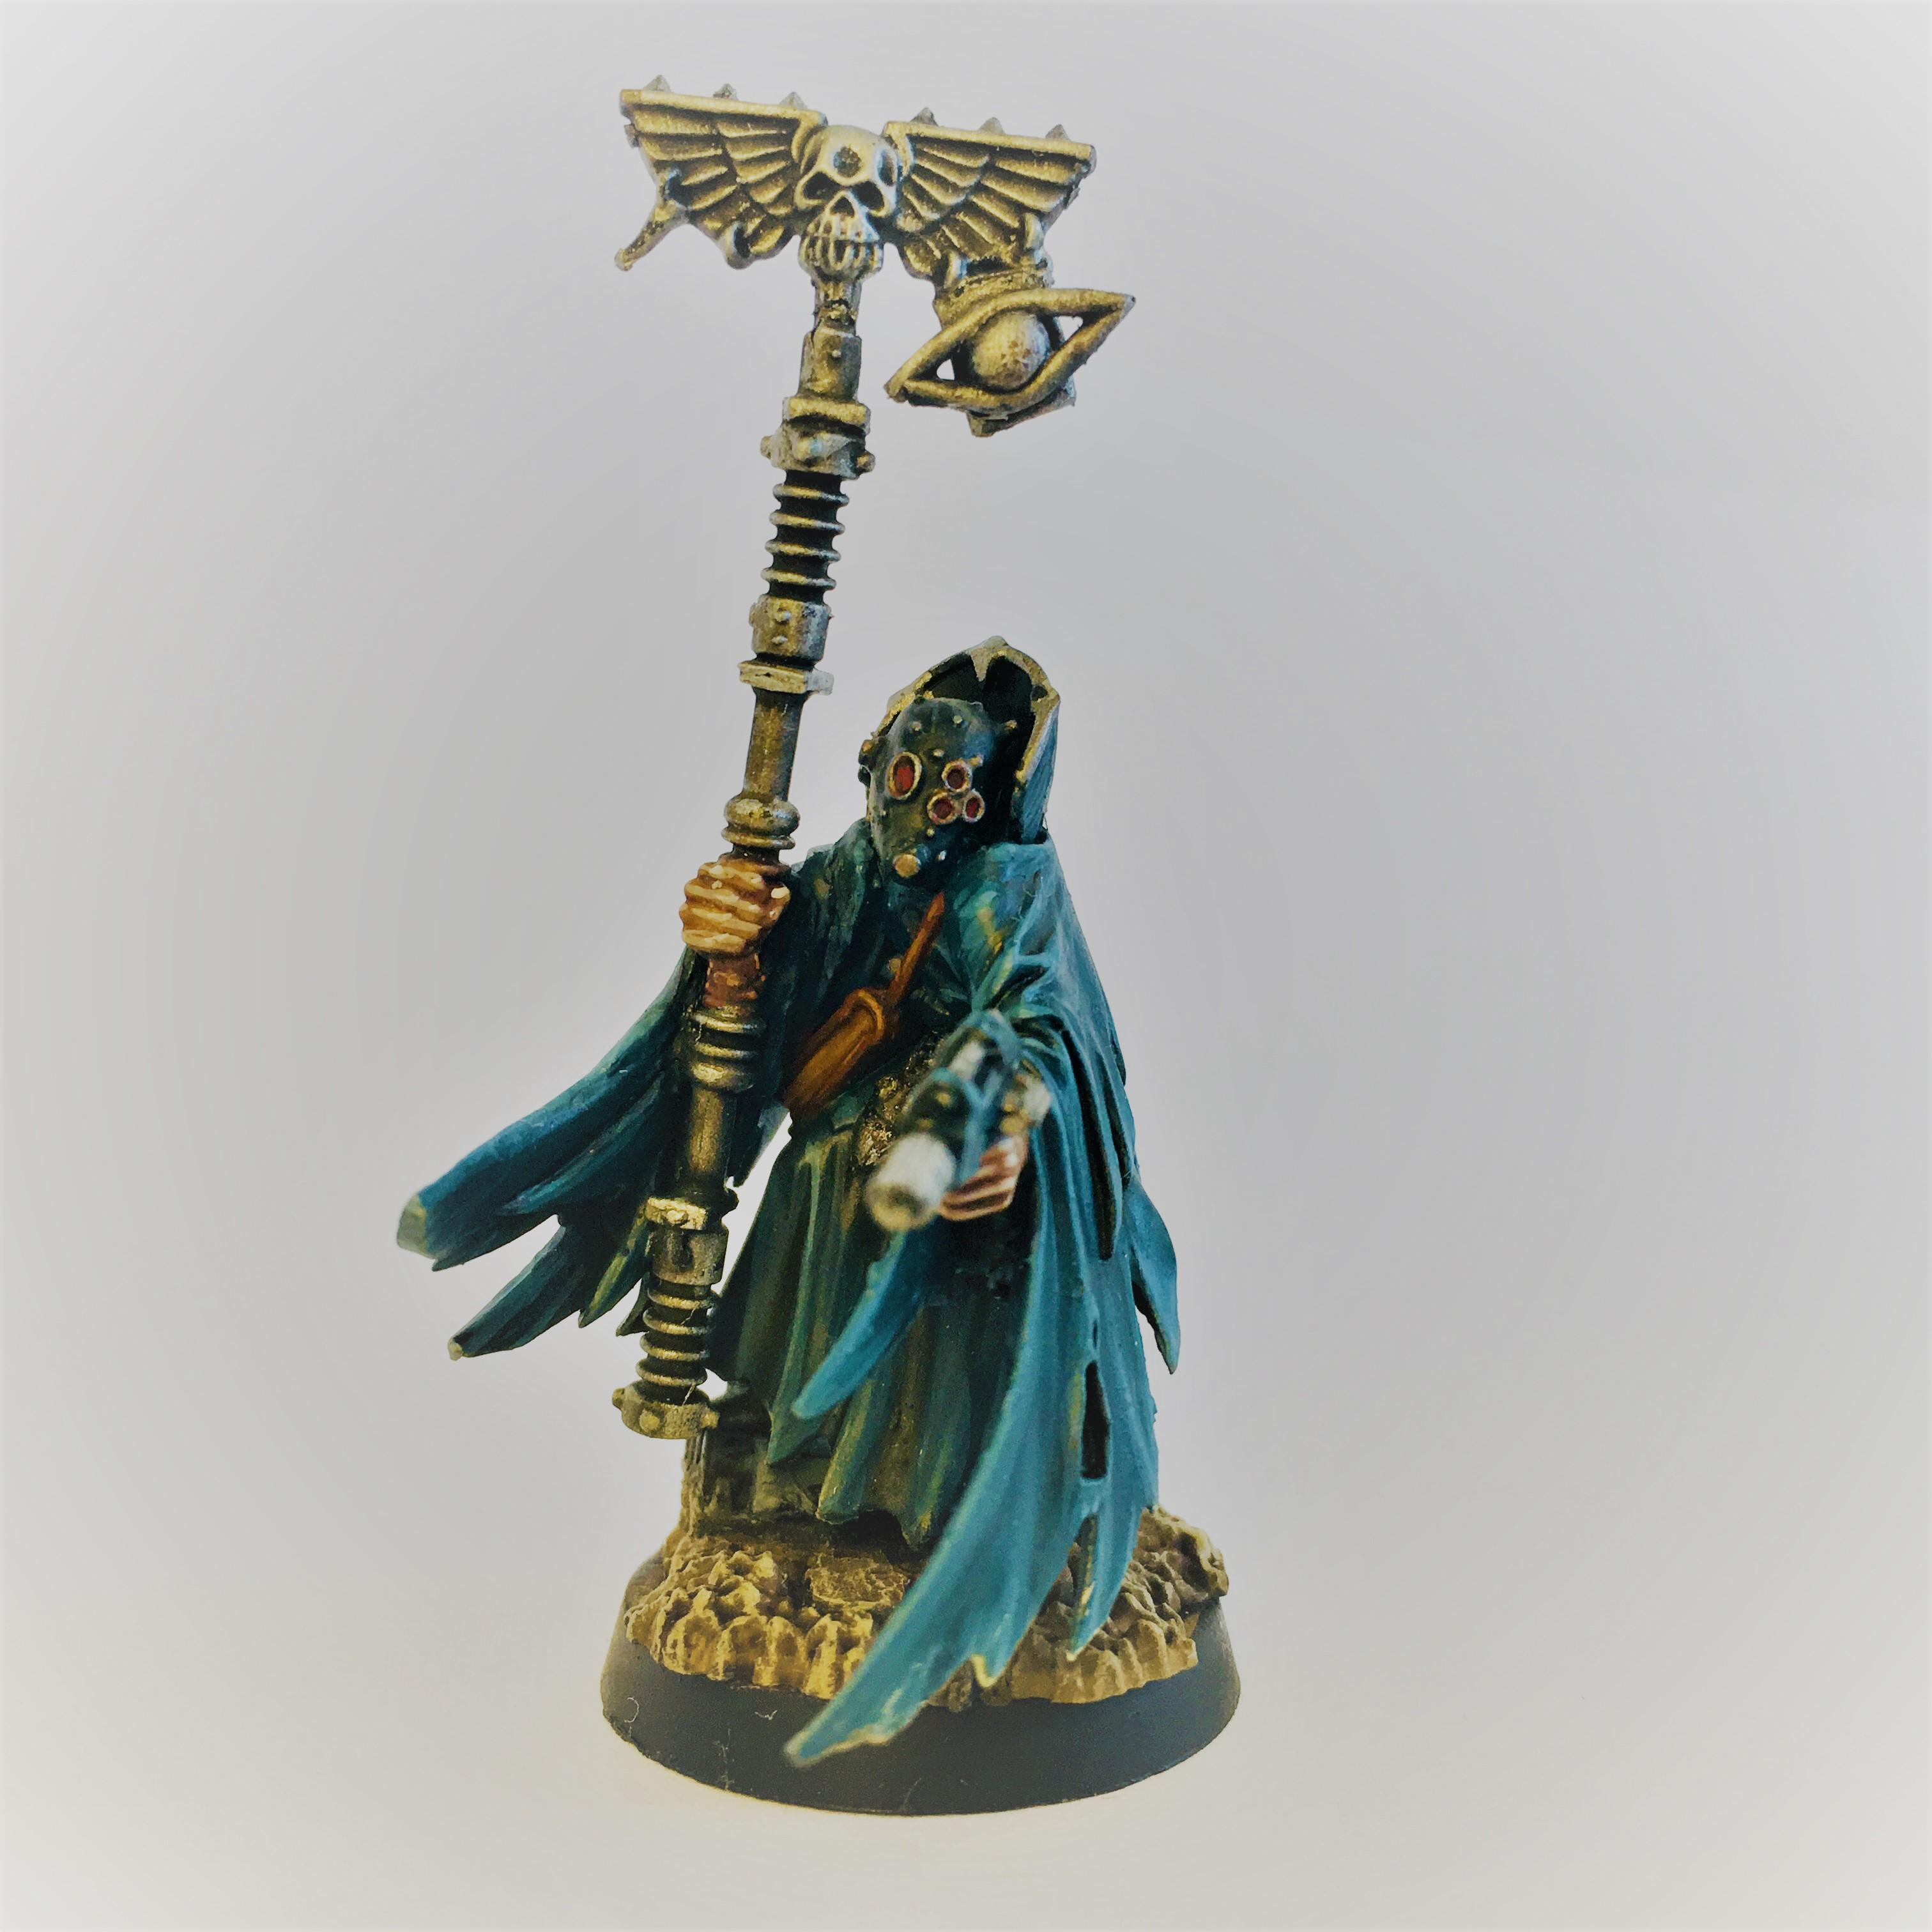 Astropath, Chaos Cultist, Conversion, Inquisition, Necromancer, Warband, Warhammer 40,000, Warhammer Fantasy